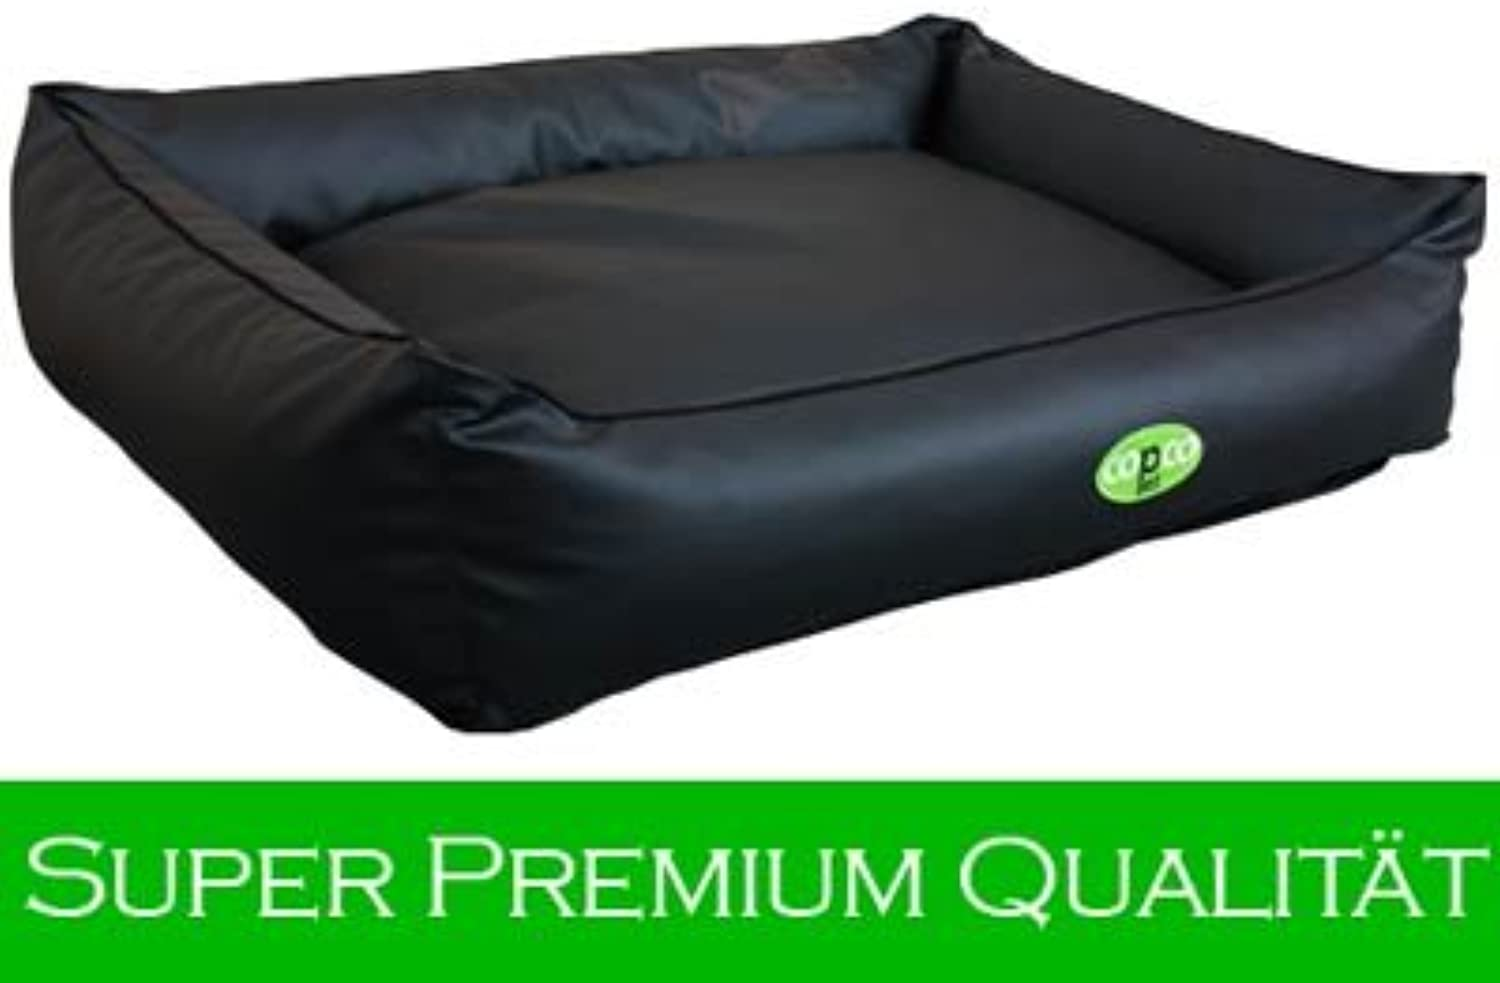 Paco Dog Bed Imitation Leather Black Available in 3 sizes